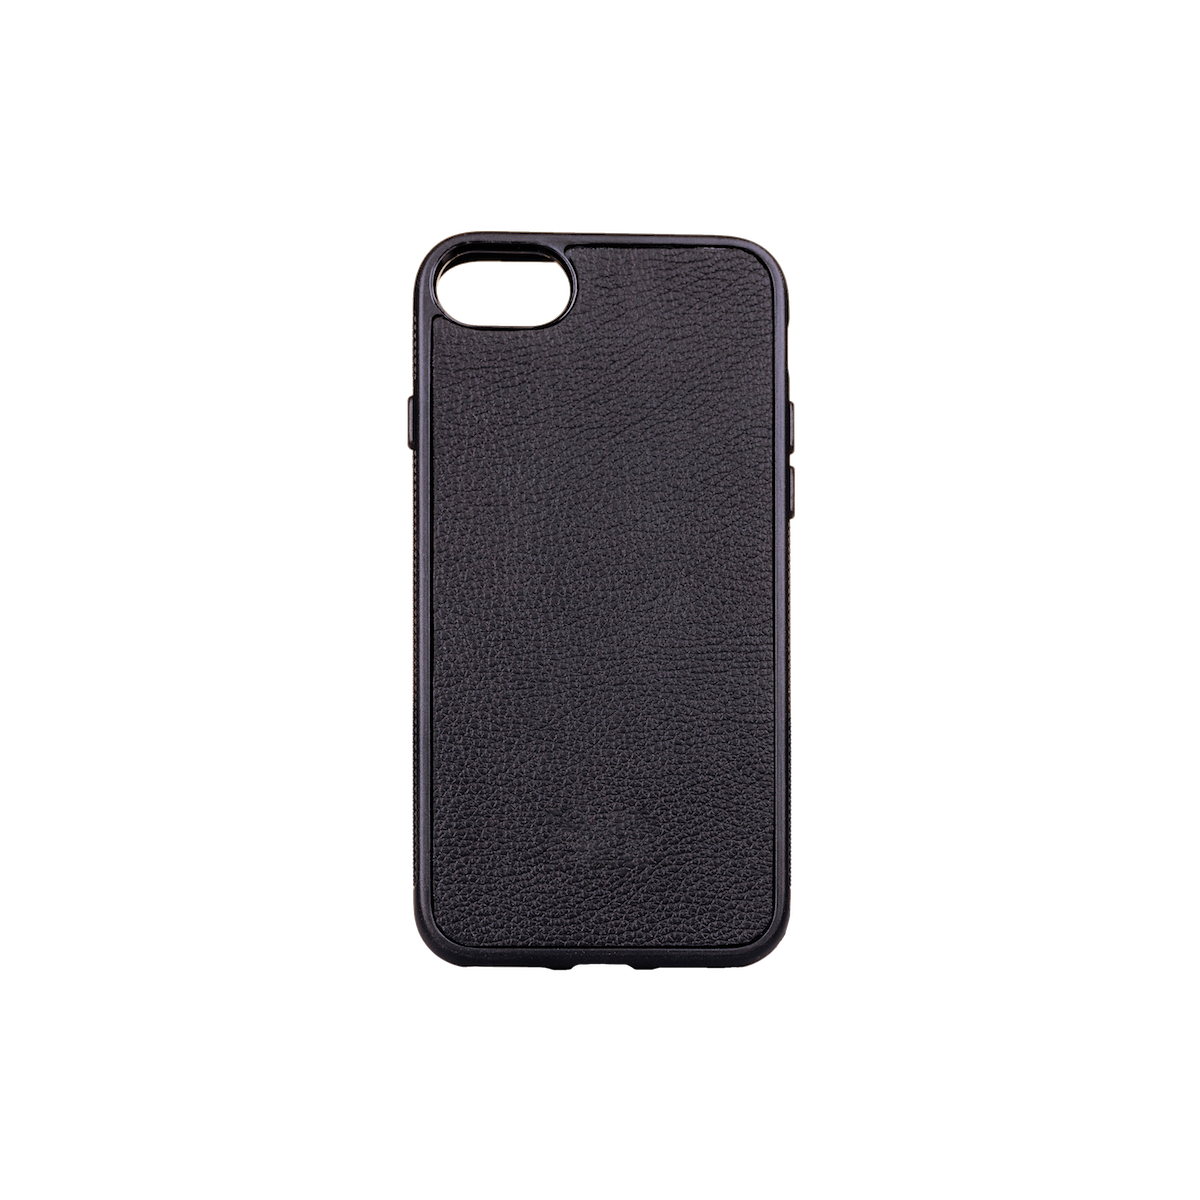 Iphone 7/8 Case, Grain Leather, MAISON JMK-VONMEL Luxe Gifts